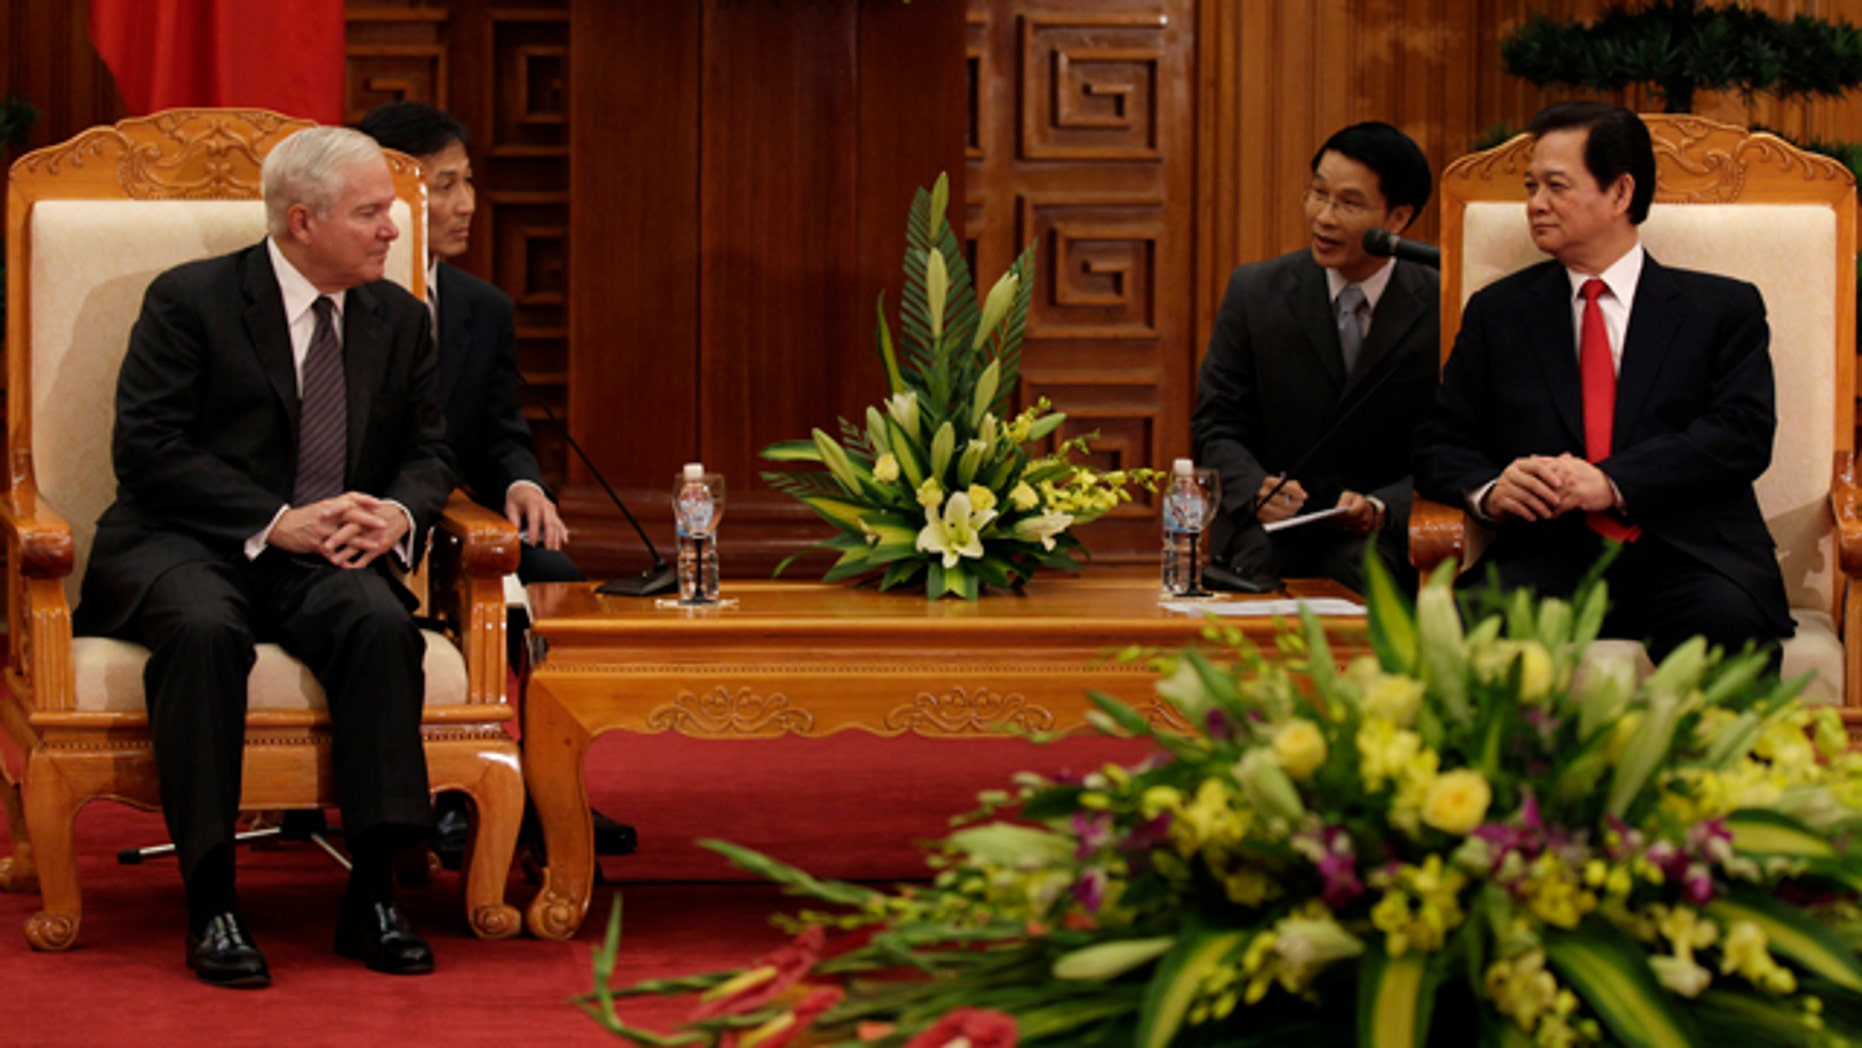 Oct. 11: Defense Secretary Robert Gates, left, meets with Vietnam's Prime Minister Nguyen Tan Dung in a meeting room at the Prime Minister's office in Hanoi, Vietnam.